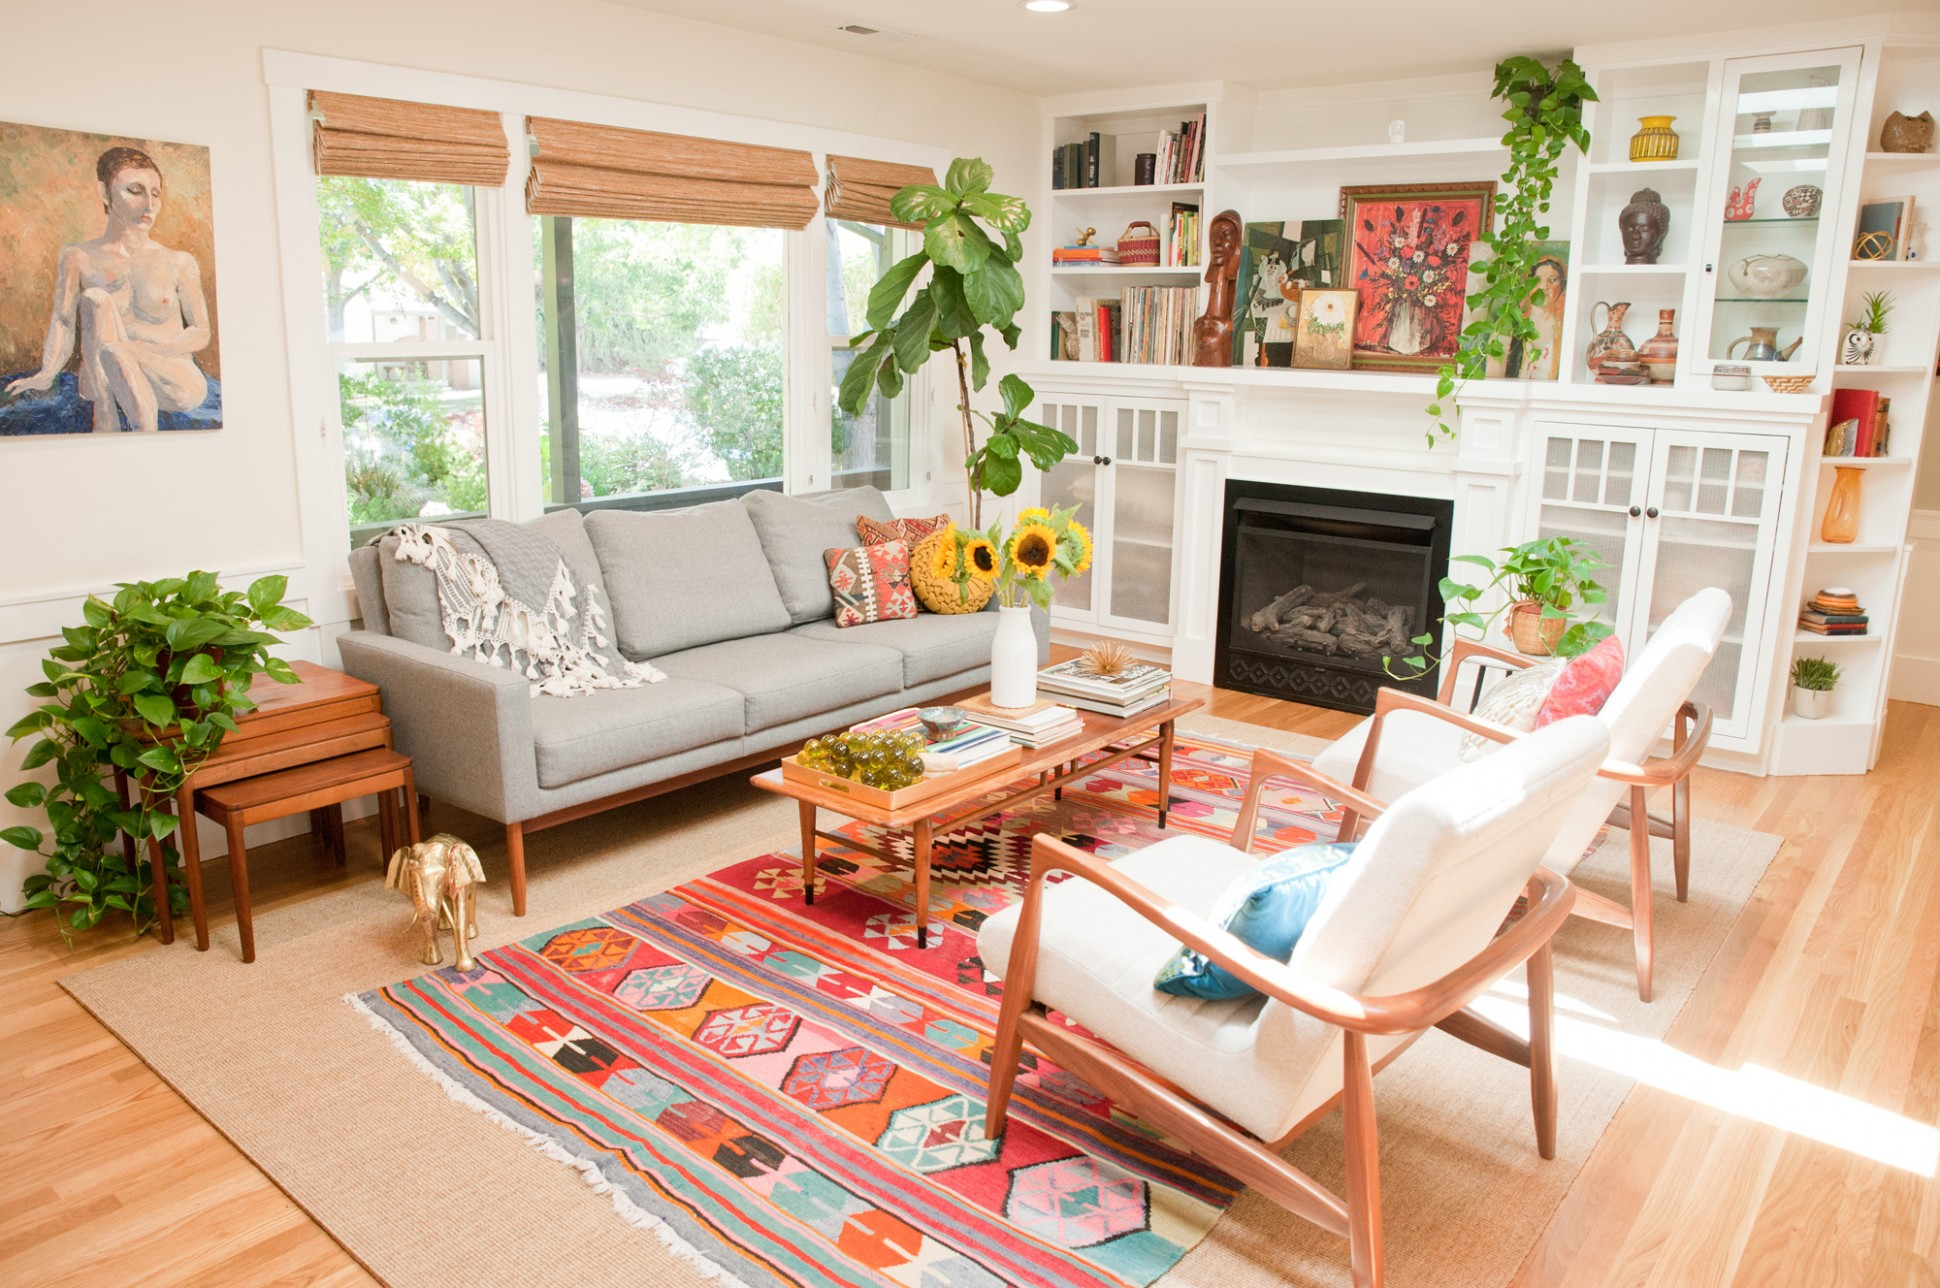 8 Best Living Room Decor Ideas - How to Decorate a Living Room  - Living Room Ideas Apartment Therapy